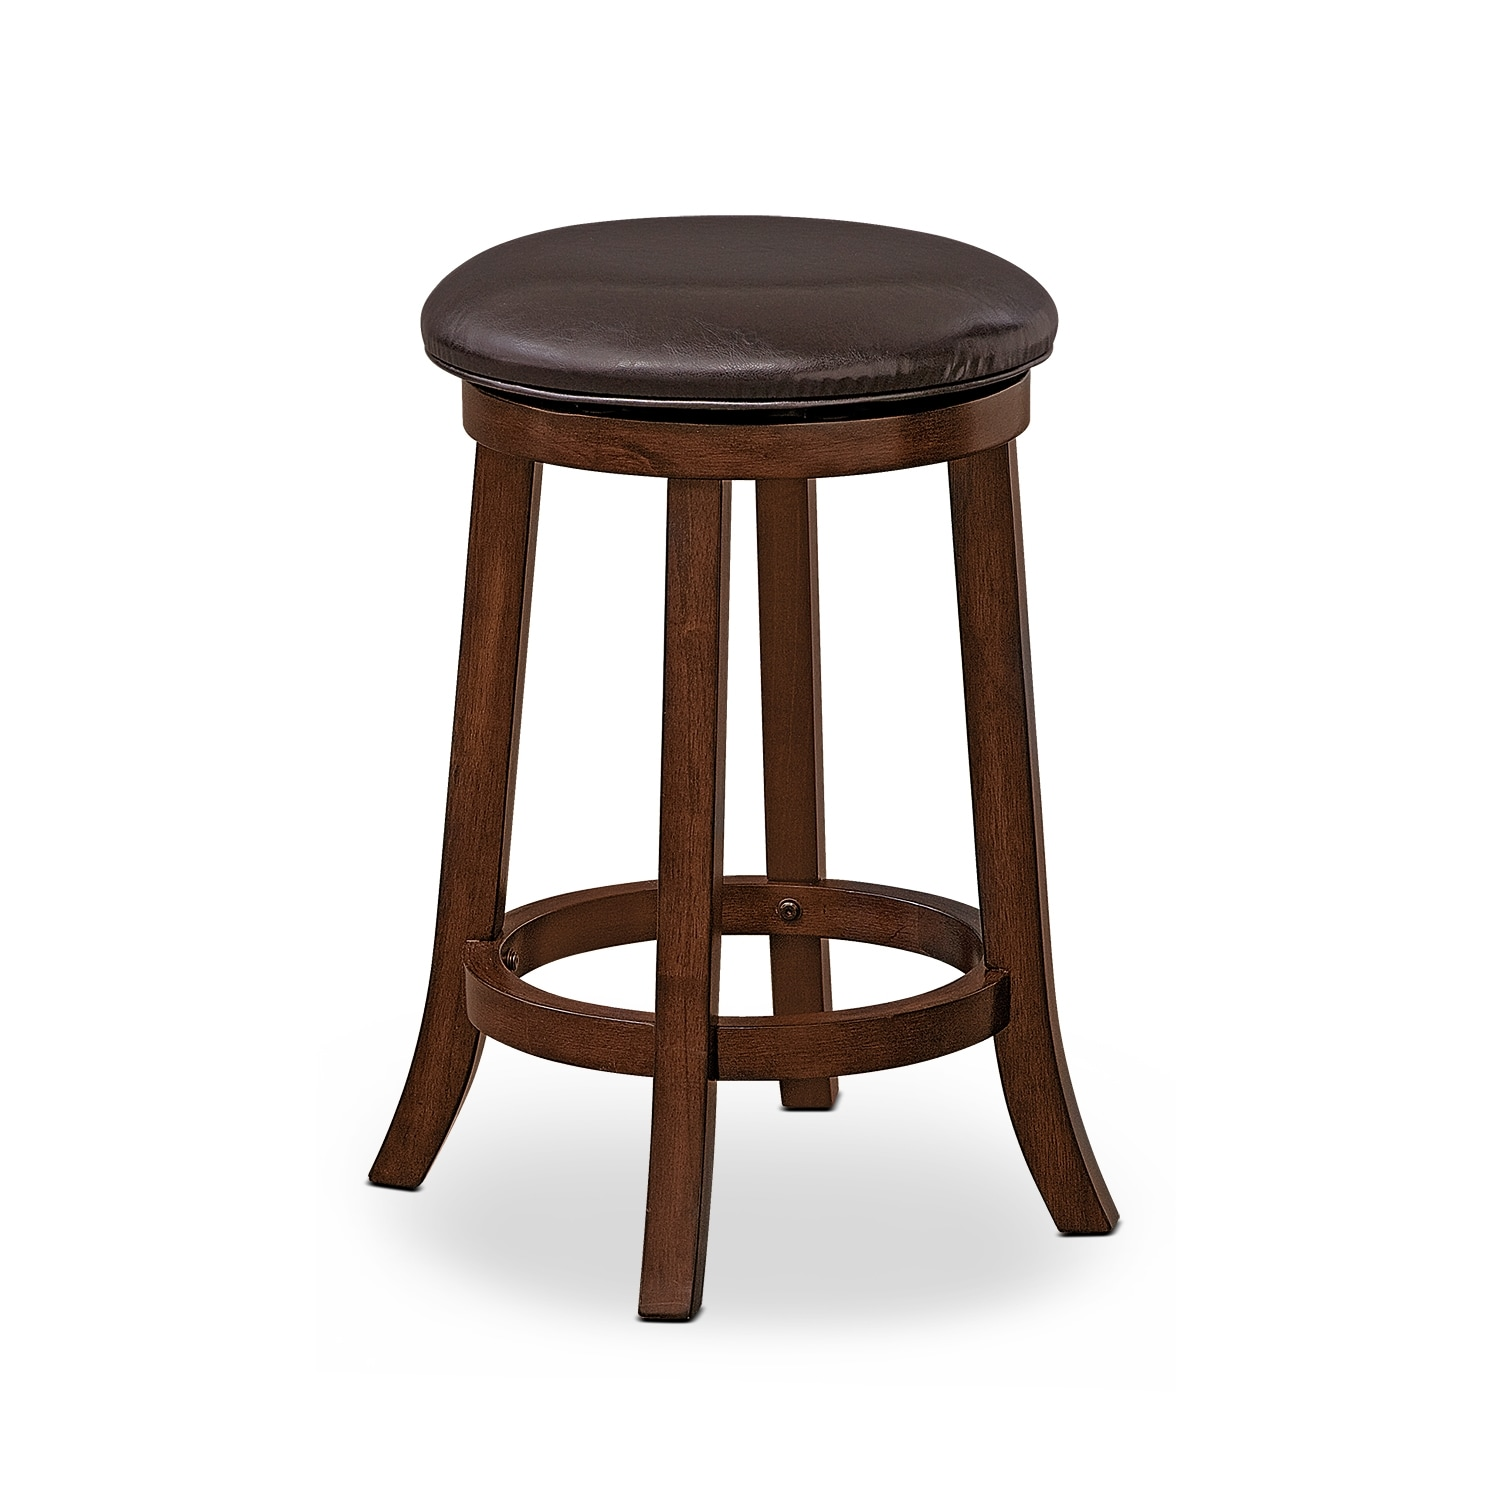 Tinker Counter-Height Stool